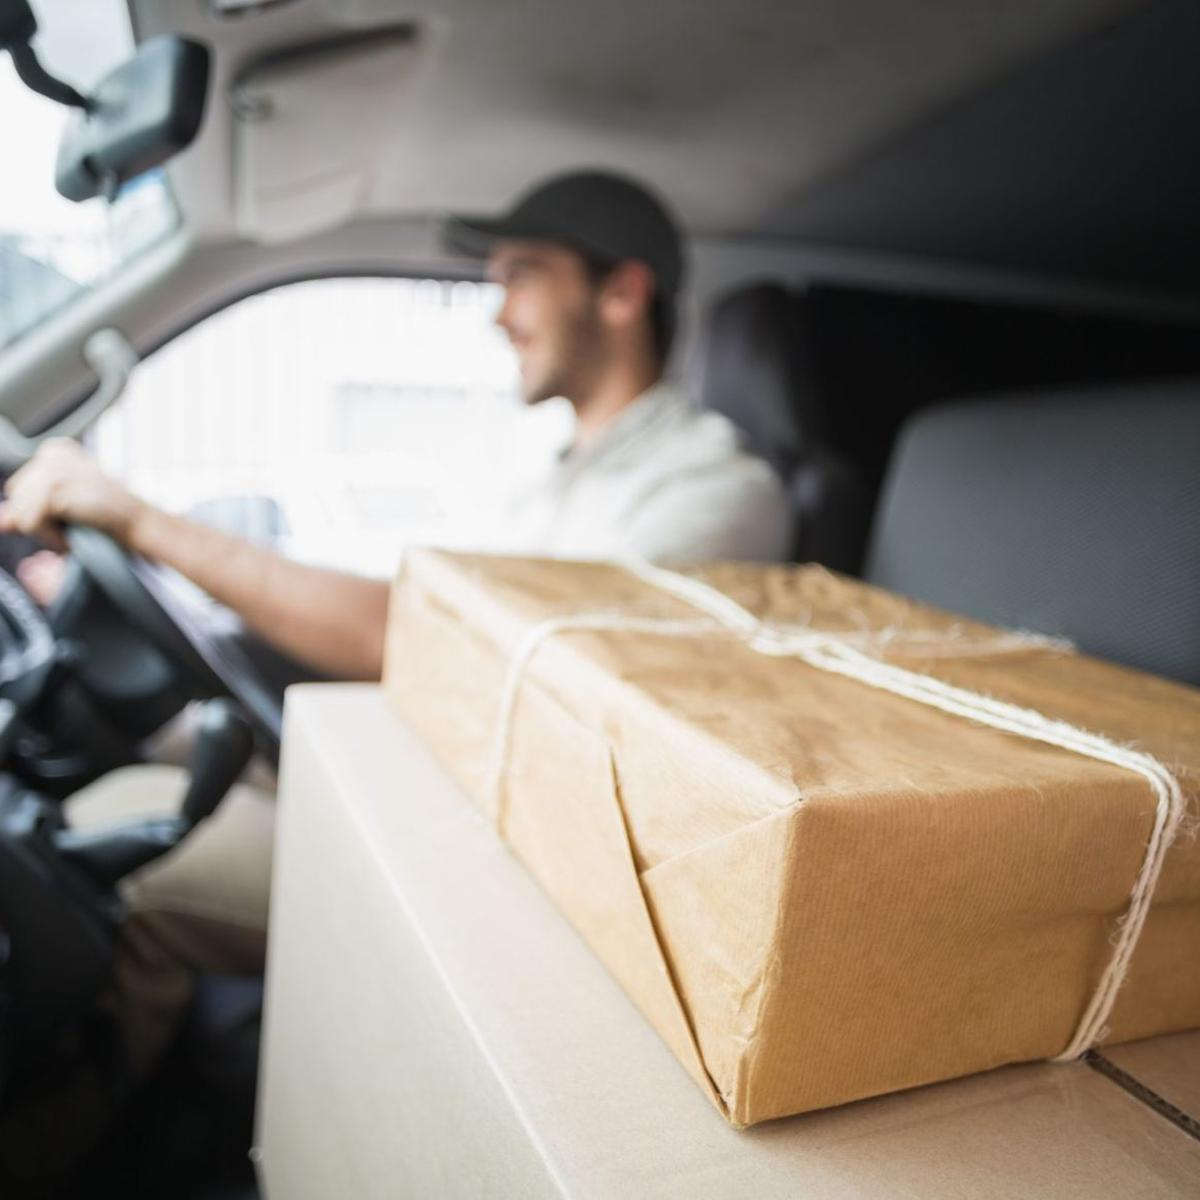 Layoff spurs Stafford man to launch courier service | Local Business